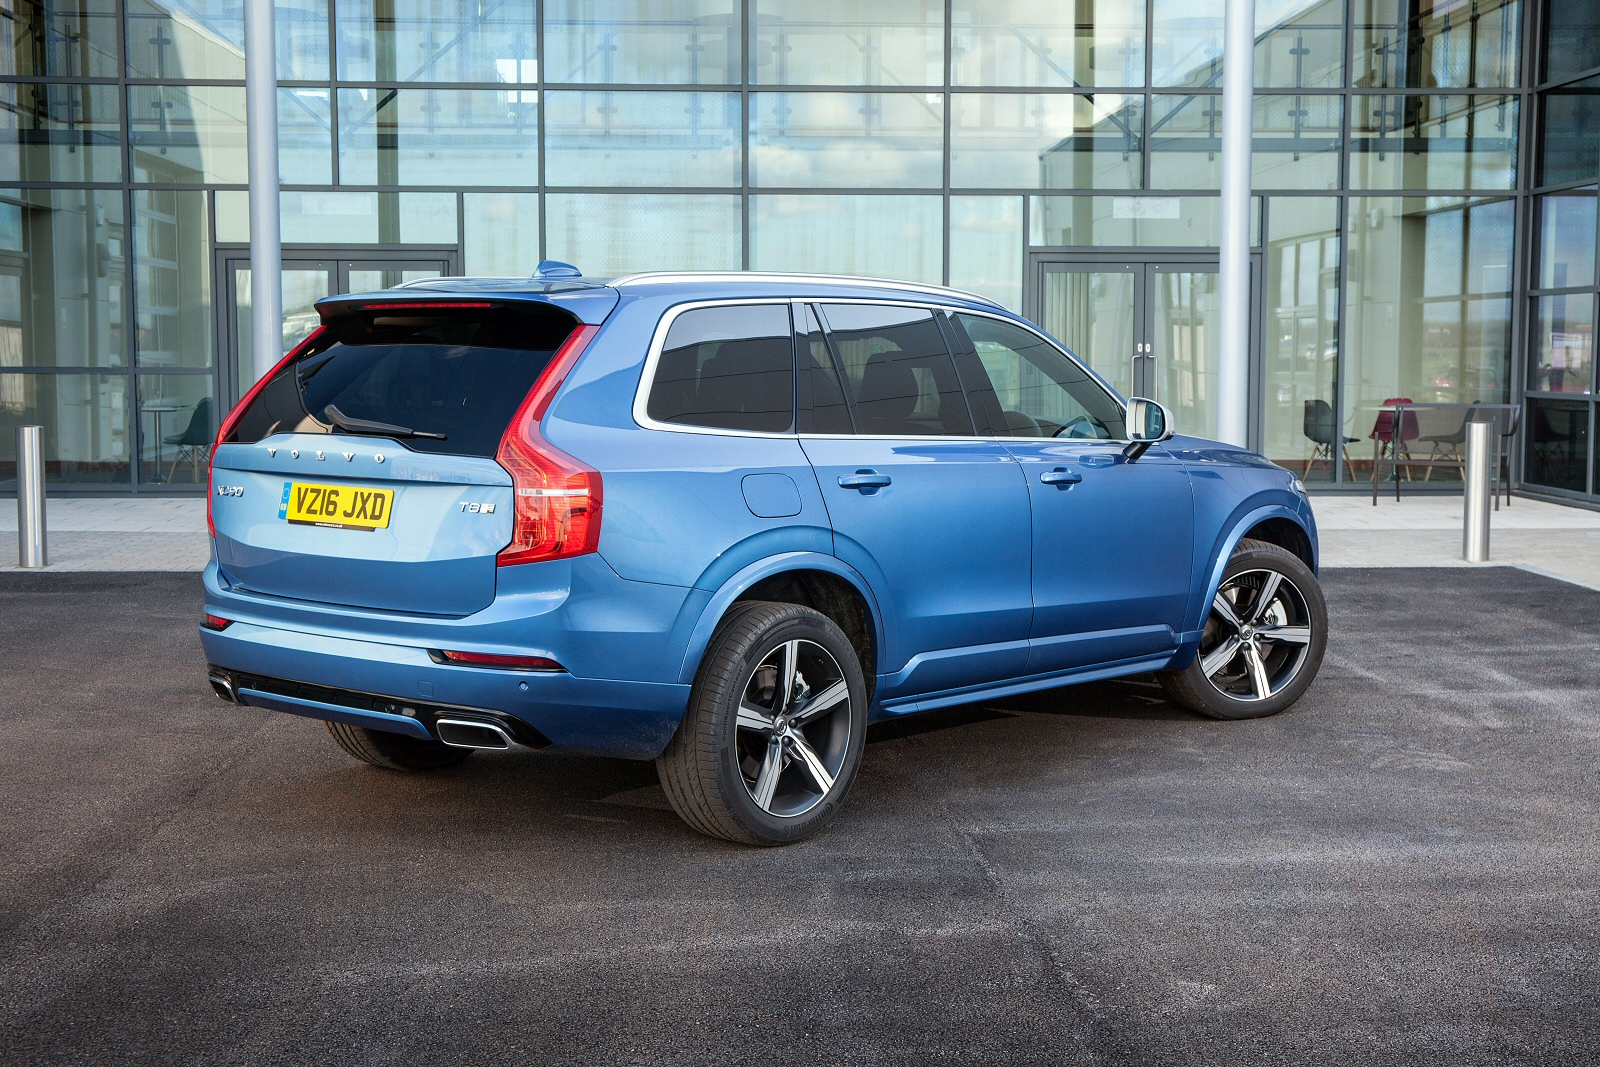 new volvo xc90 2 0 d5 powerpulse momentum 5dr awd. Black Bedroom Furniture Sets. Home Design Ideas